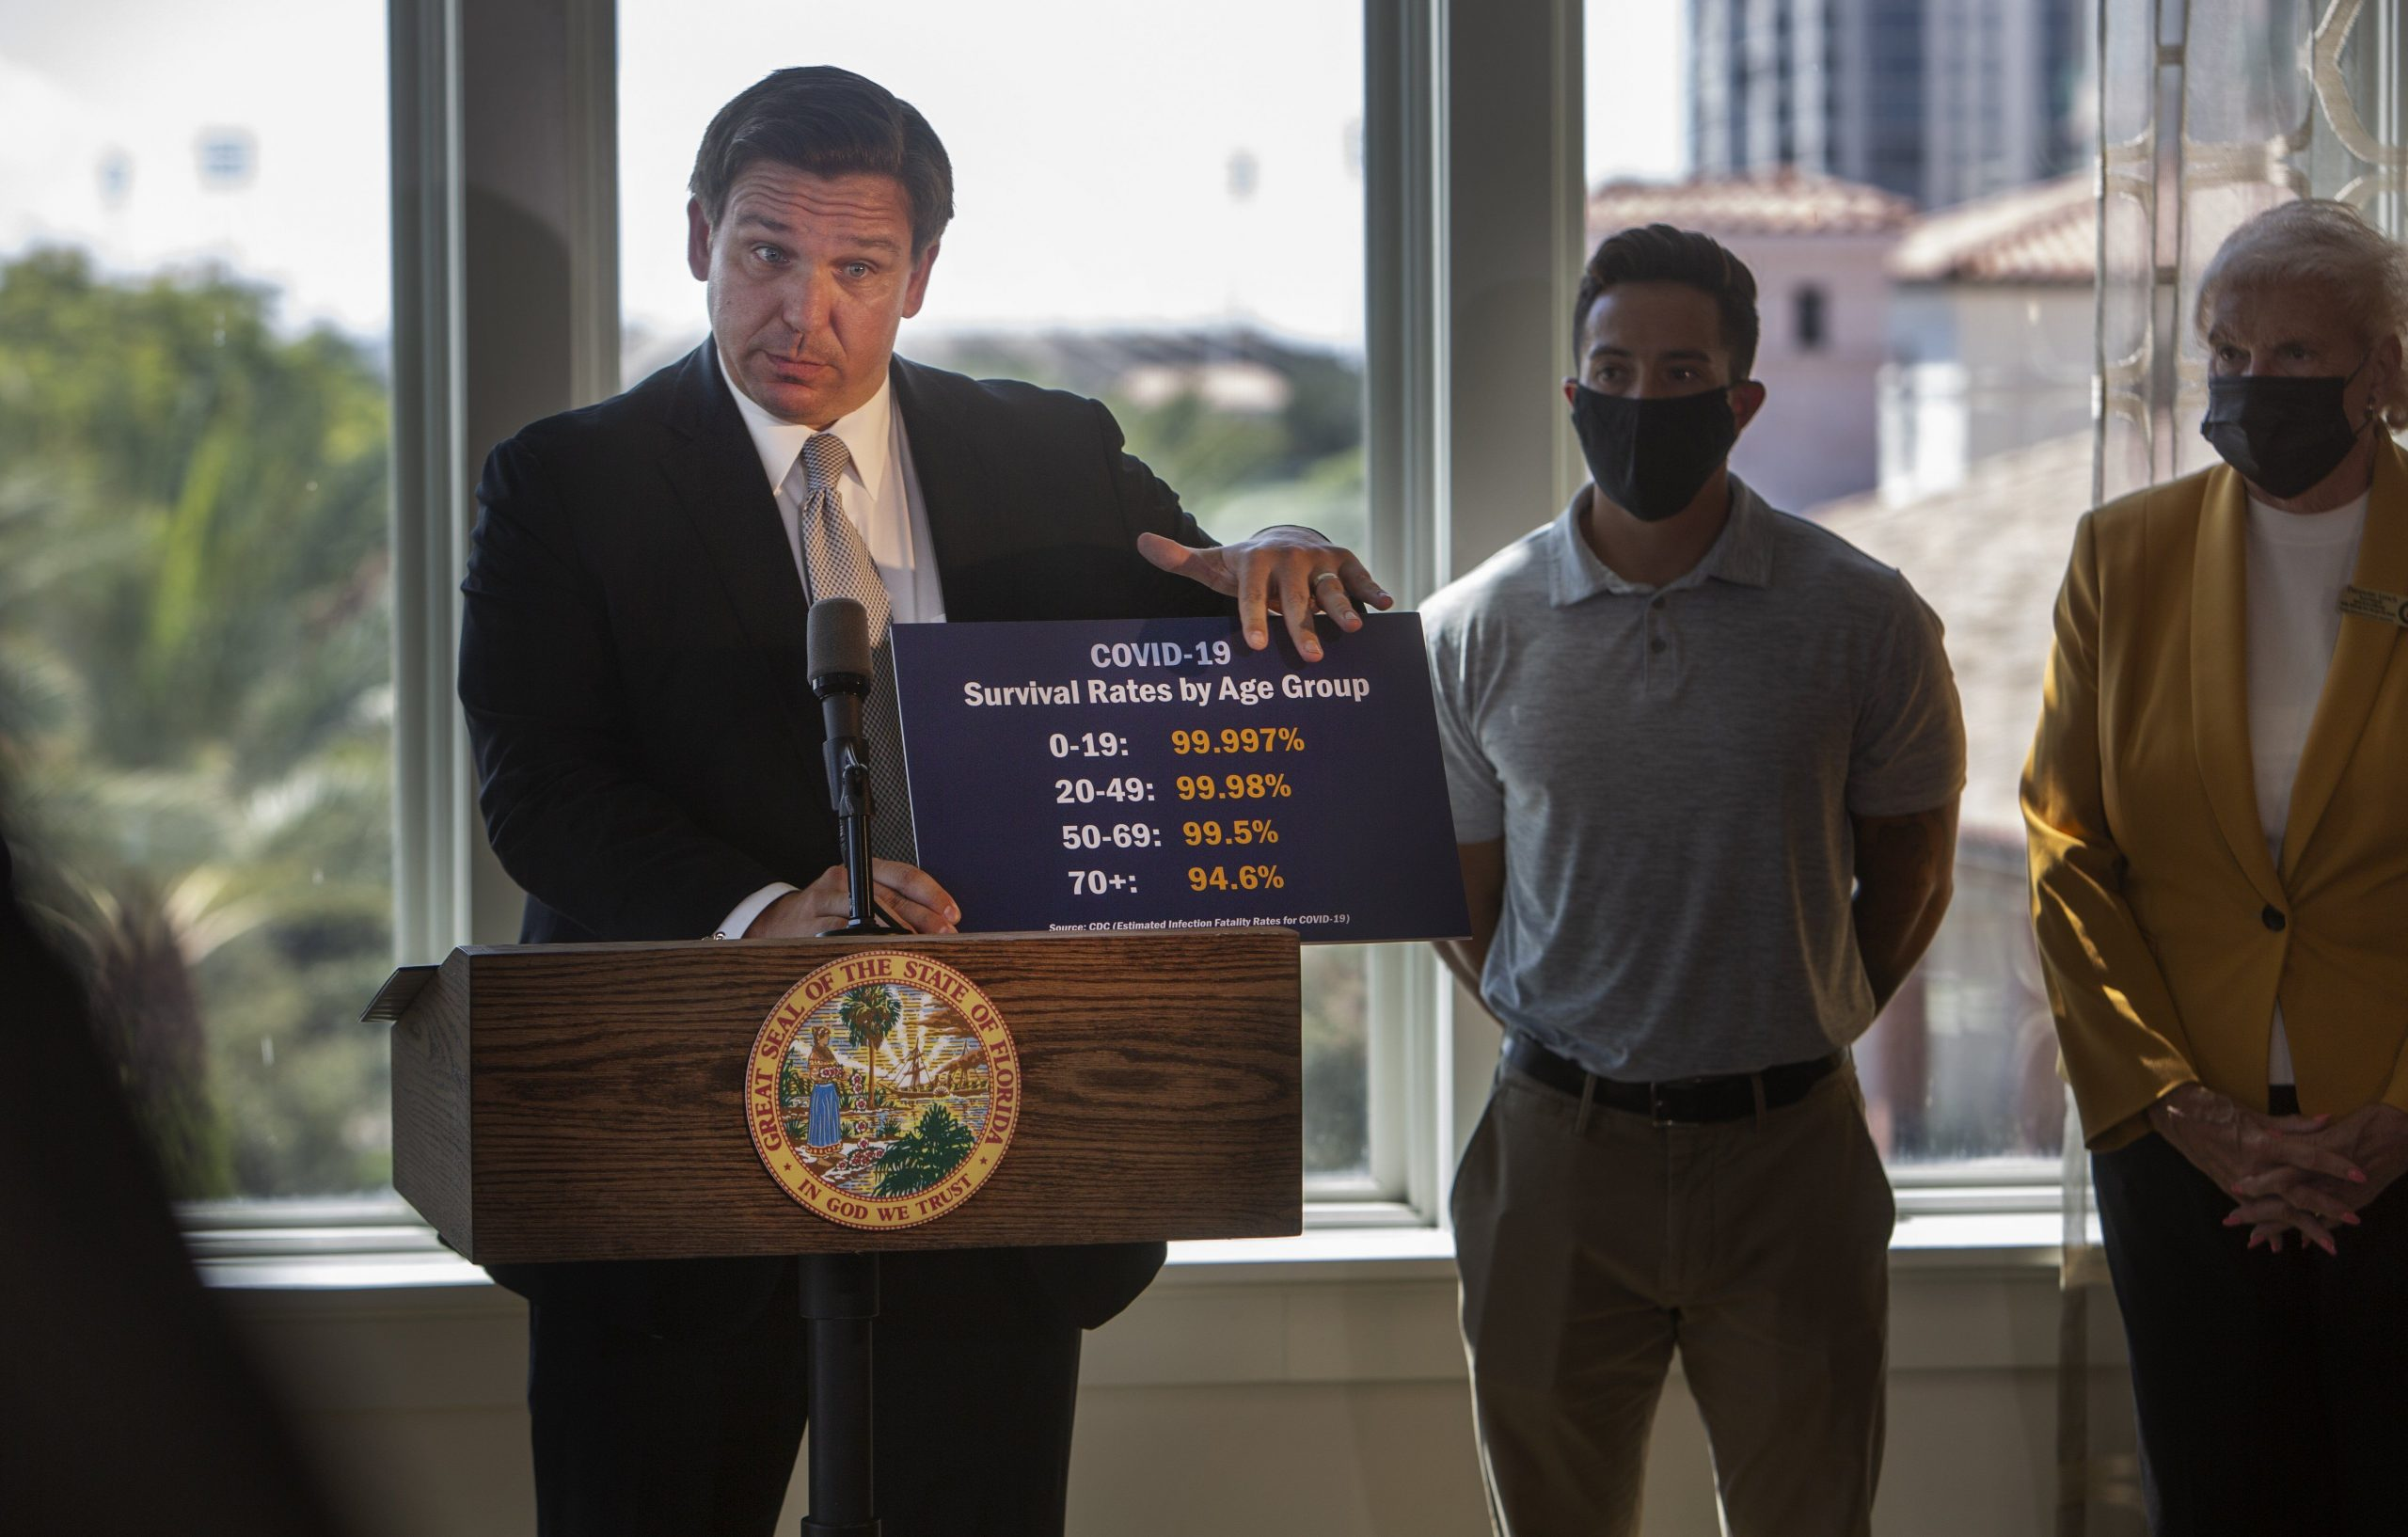 Ron DeSantis holding sign showing COVID survival rates by age group